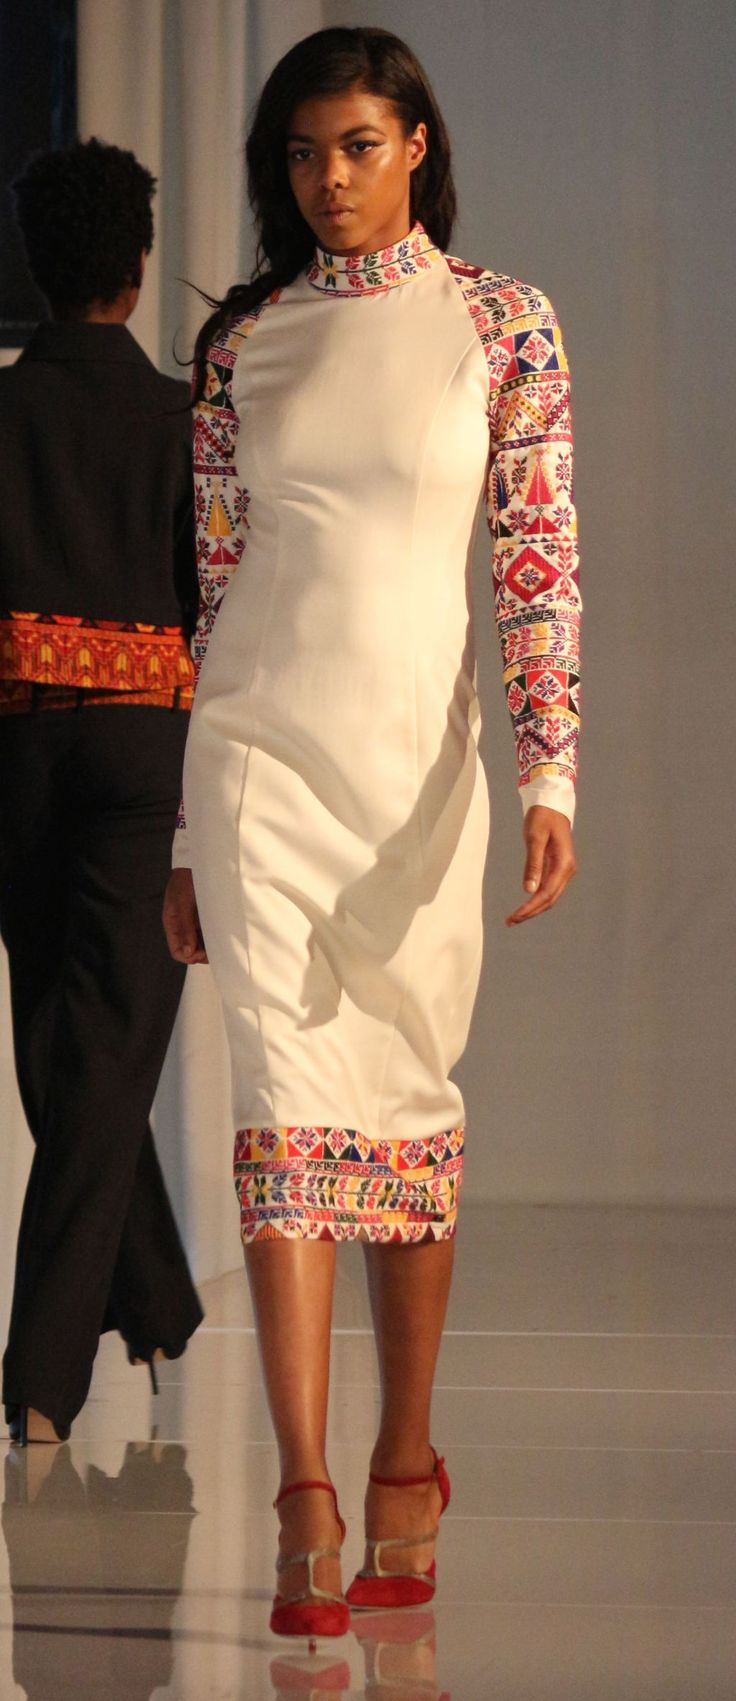 United nations fashion show -- Palestinian embroidery on a sheath dress